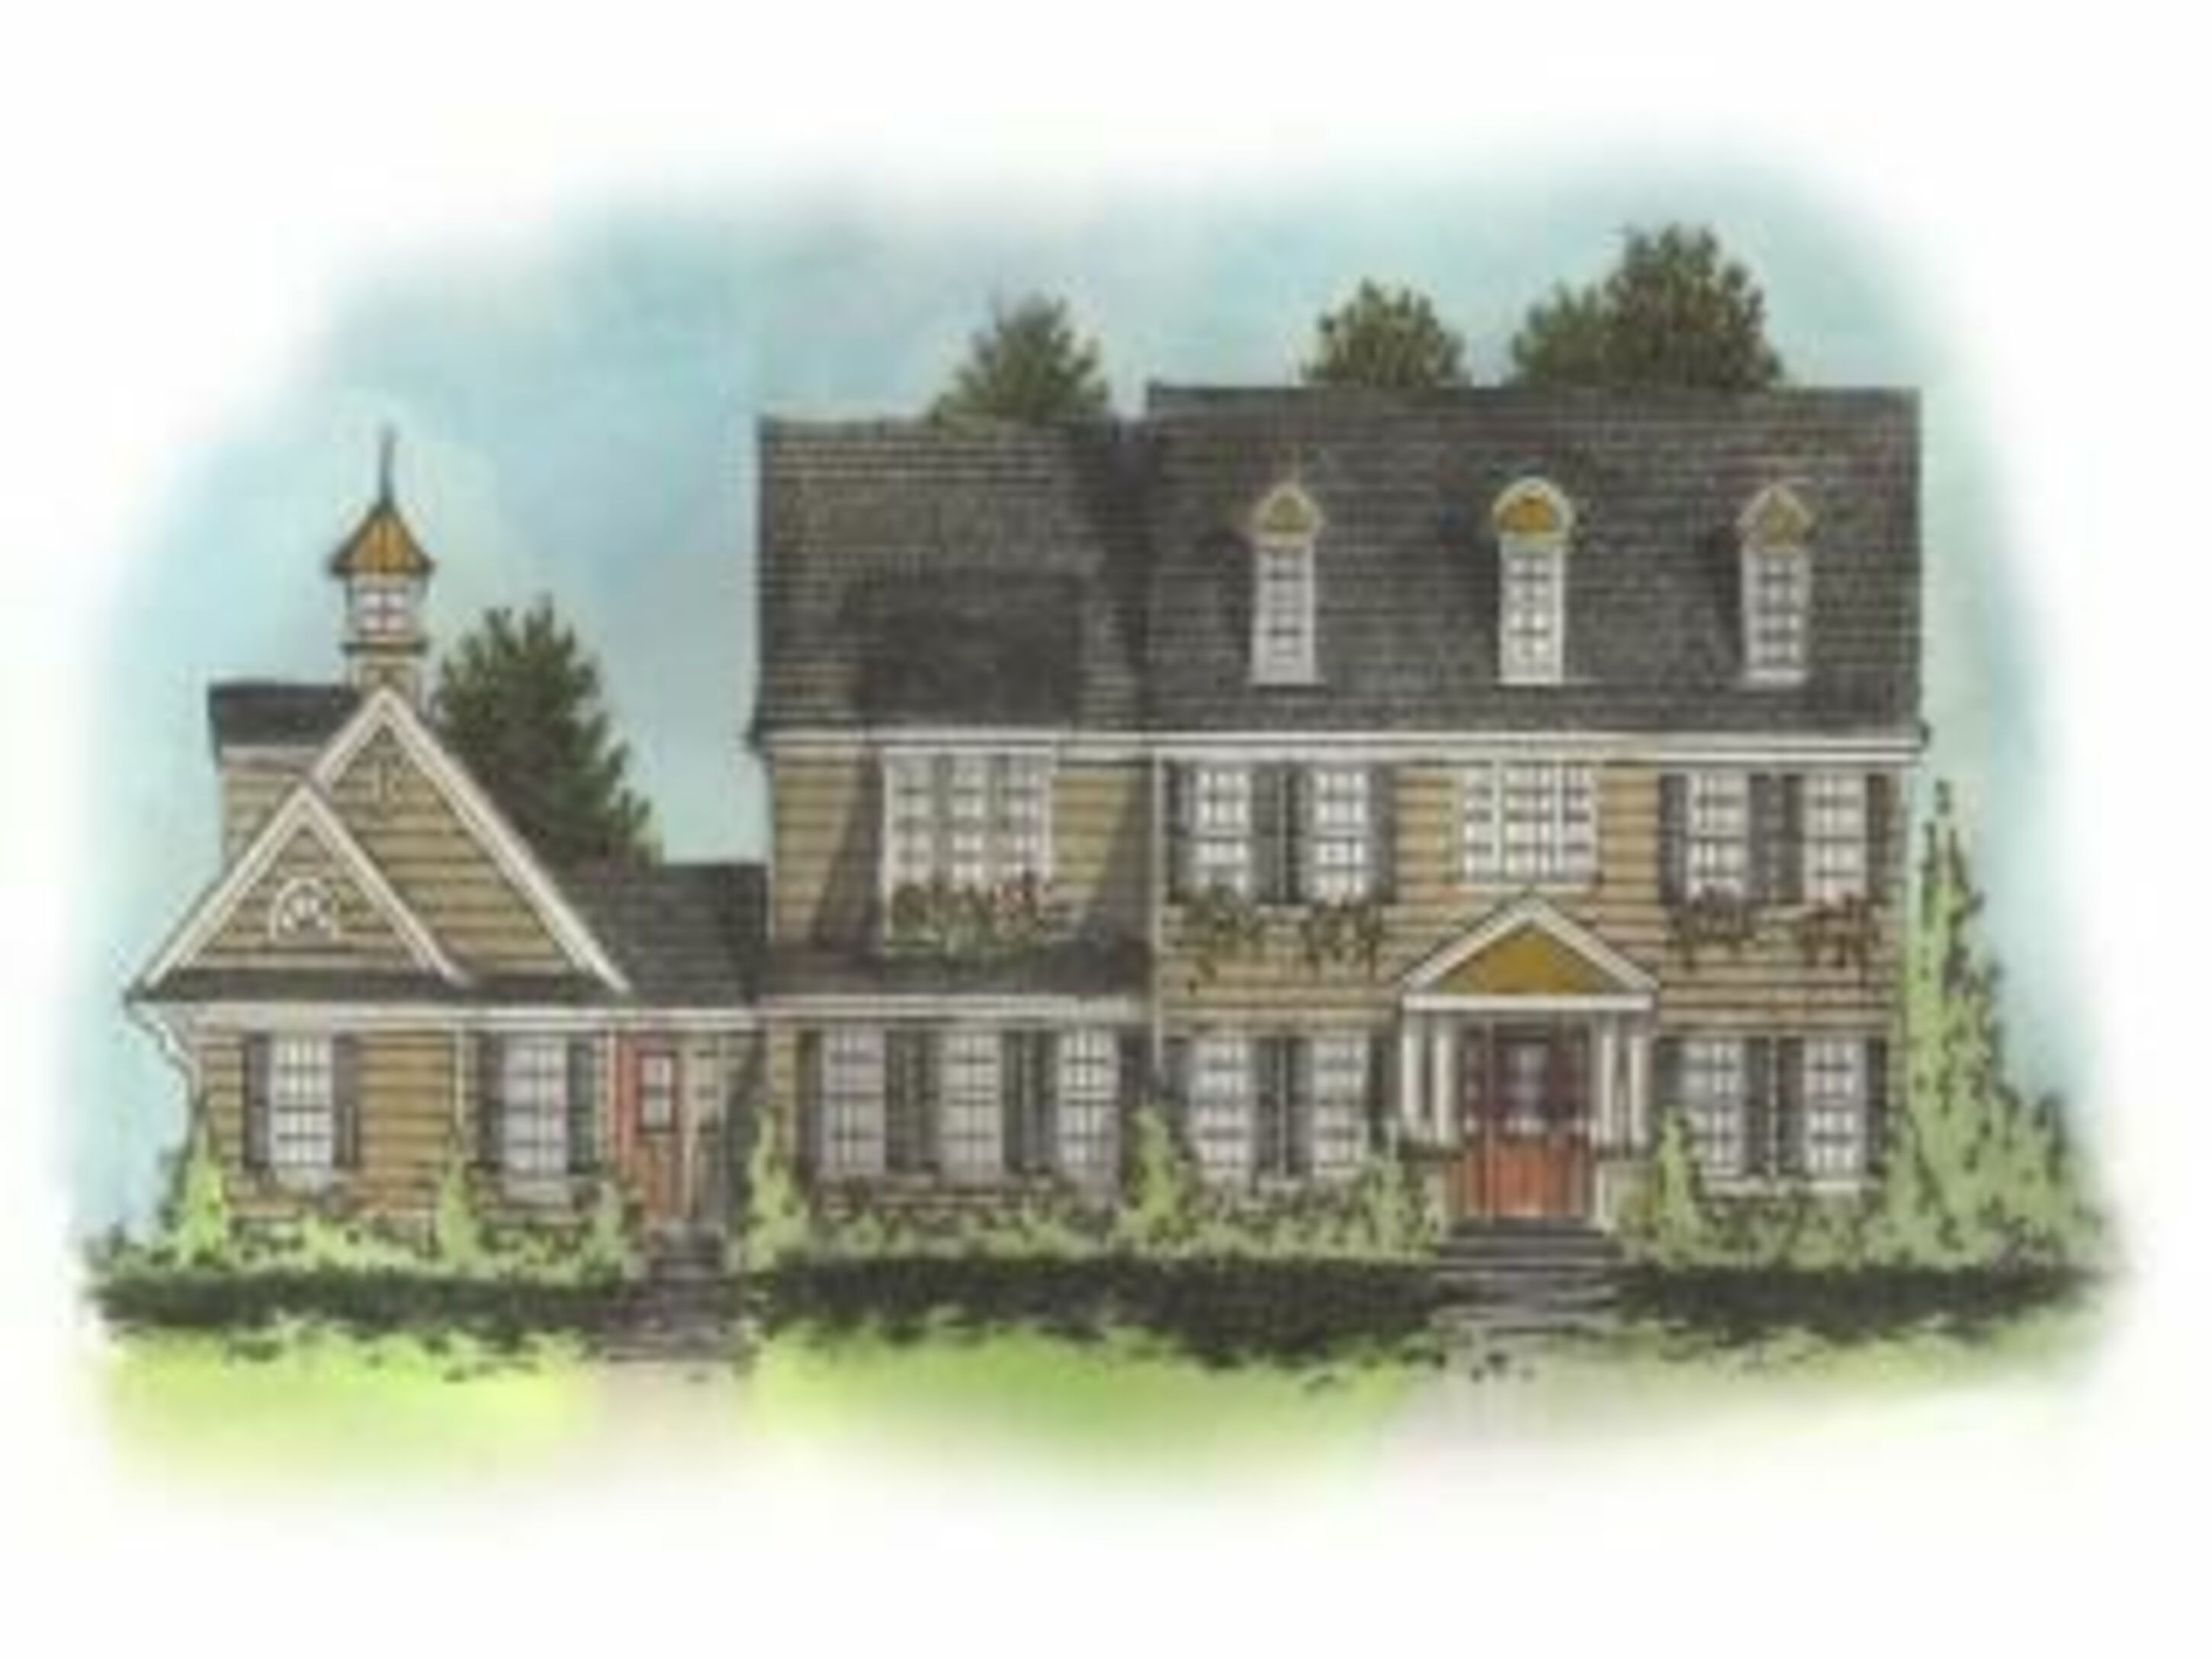 15 Henrys Hollow Ct - East Quogue, New York